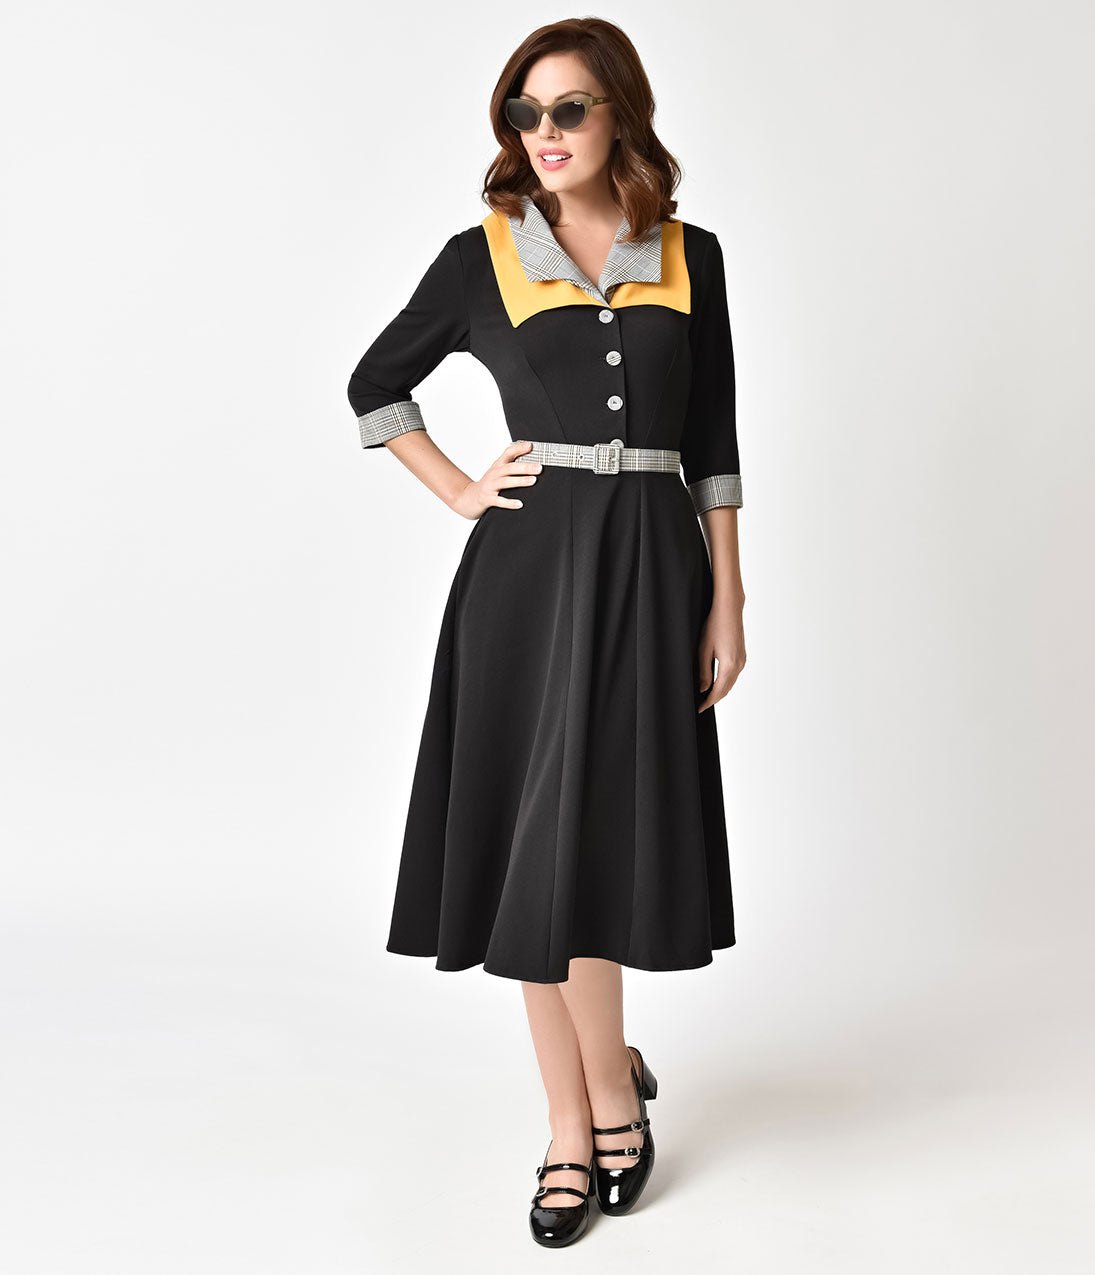 1950s Housewife Dress | 50s Day Dresses Miss Candy Floss 1950S Style Black  Plaid Trim Othelia Lou Swing Dress $88.00 AT vintagedancer.com